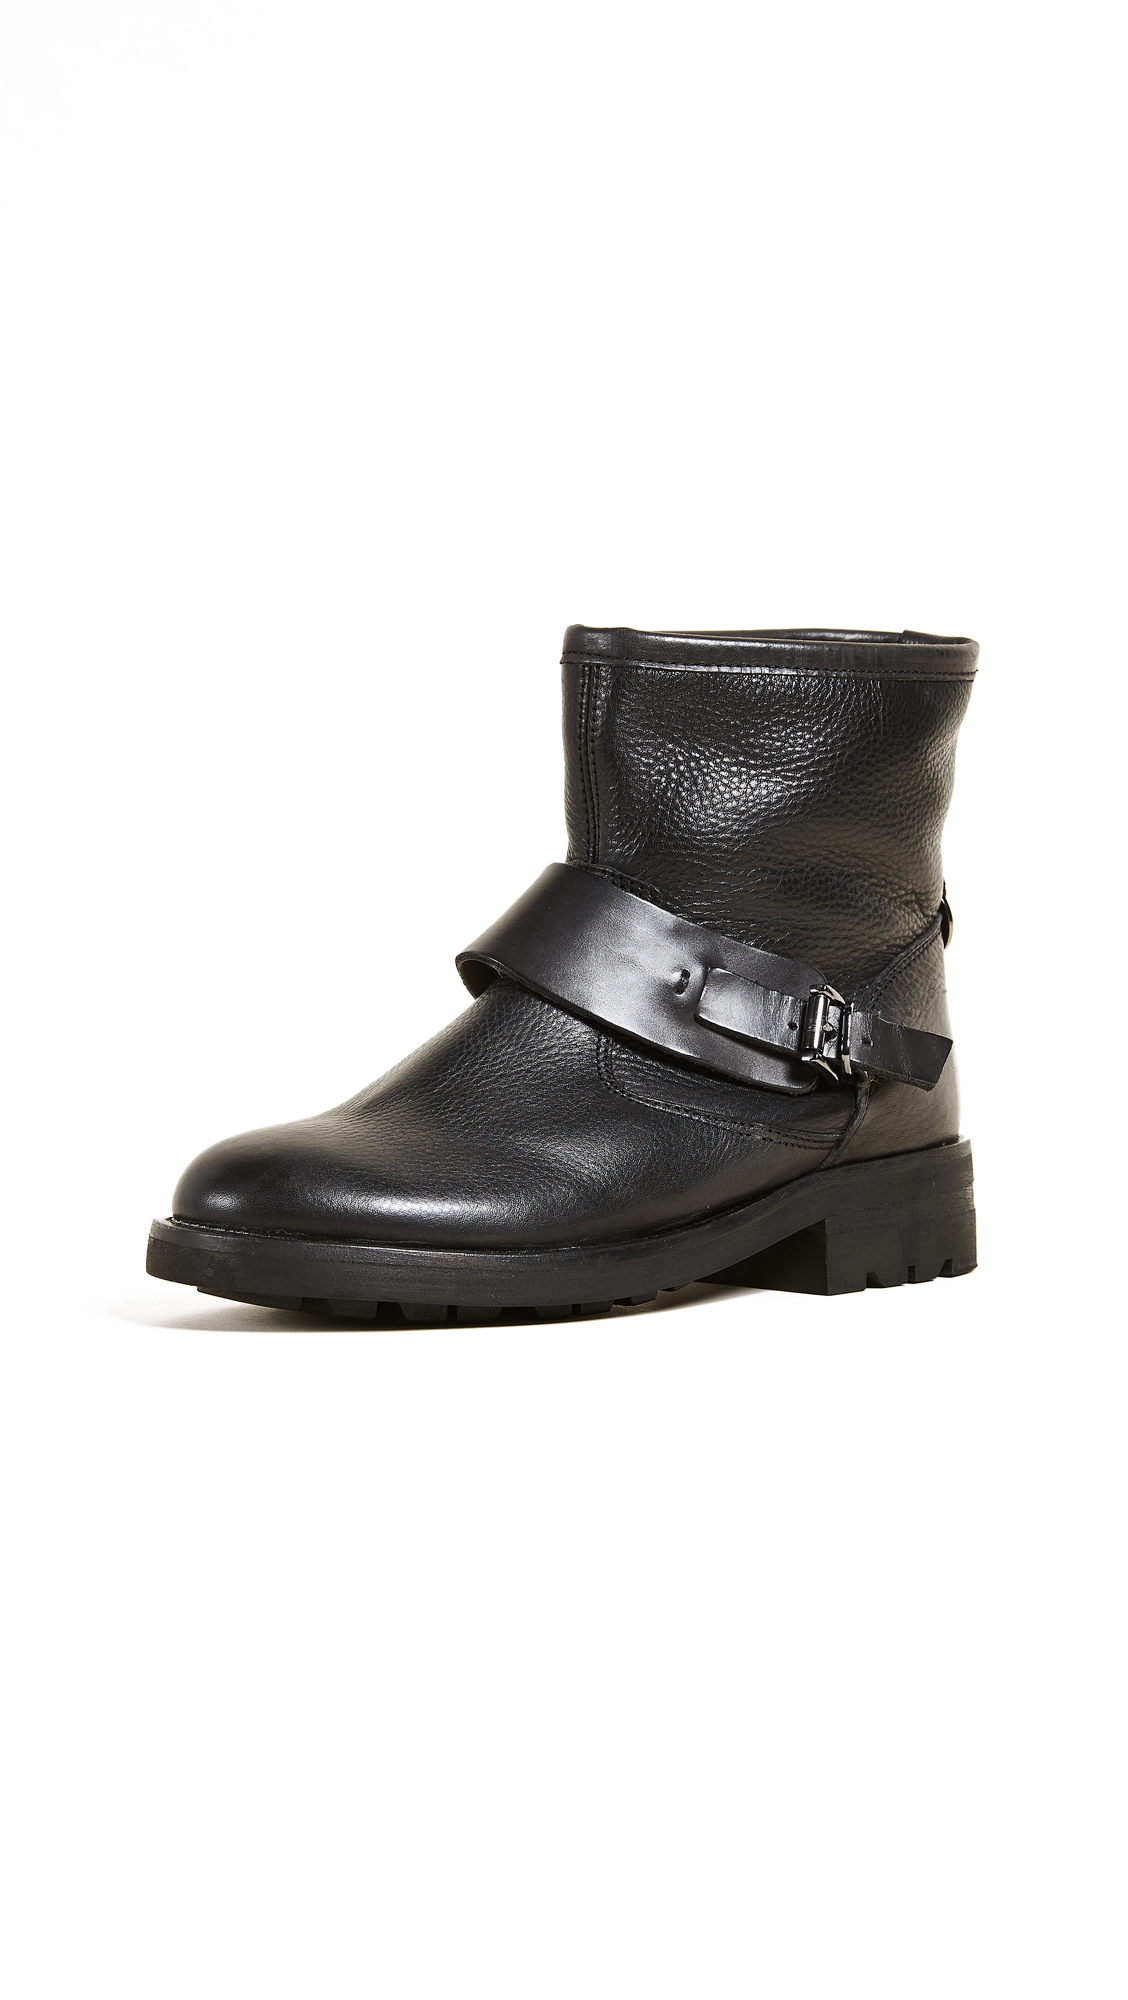 Hudson London Mac Buckle Booties - Black